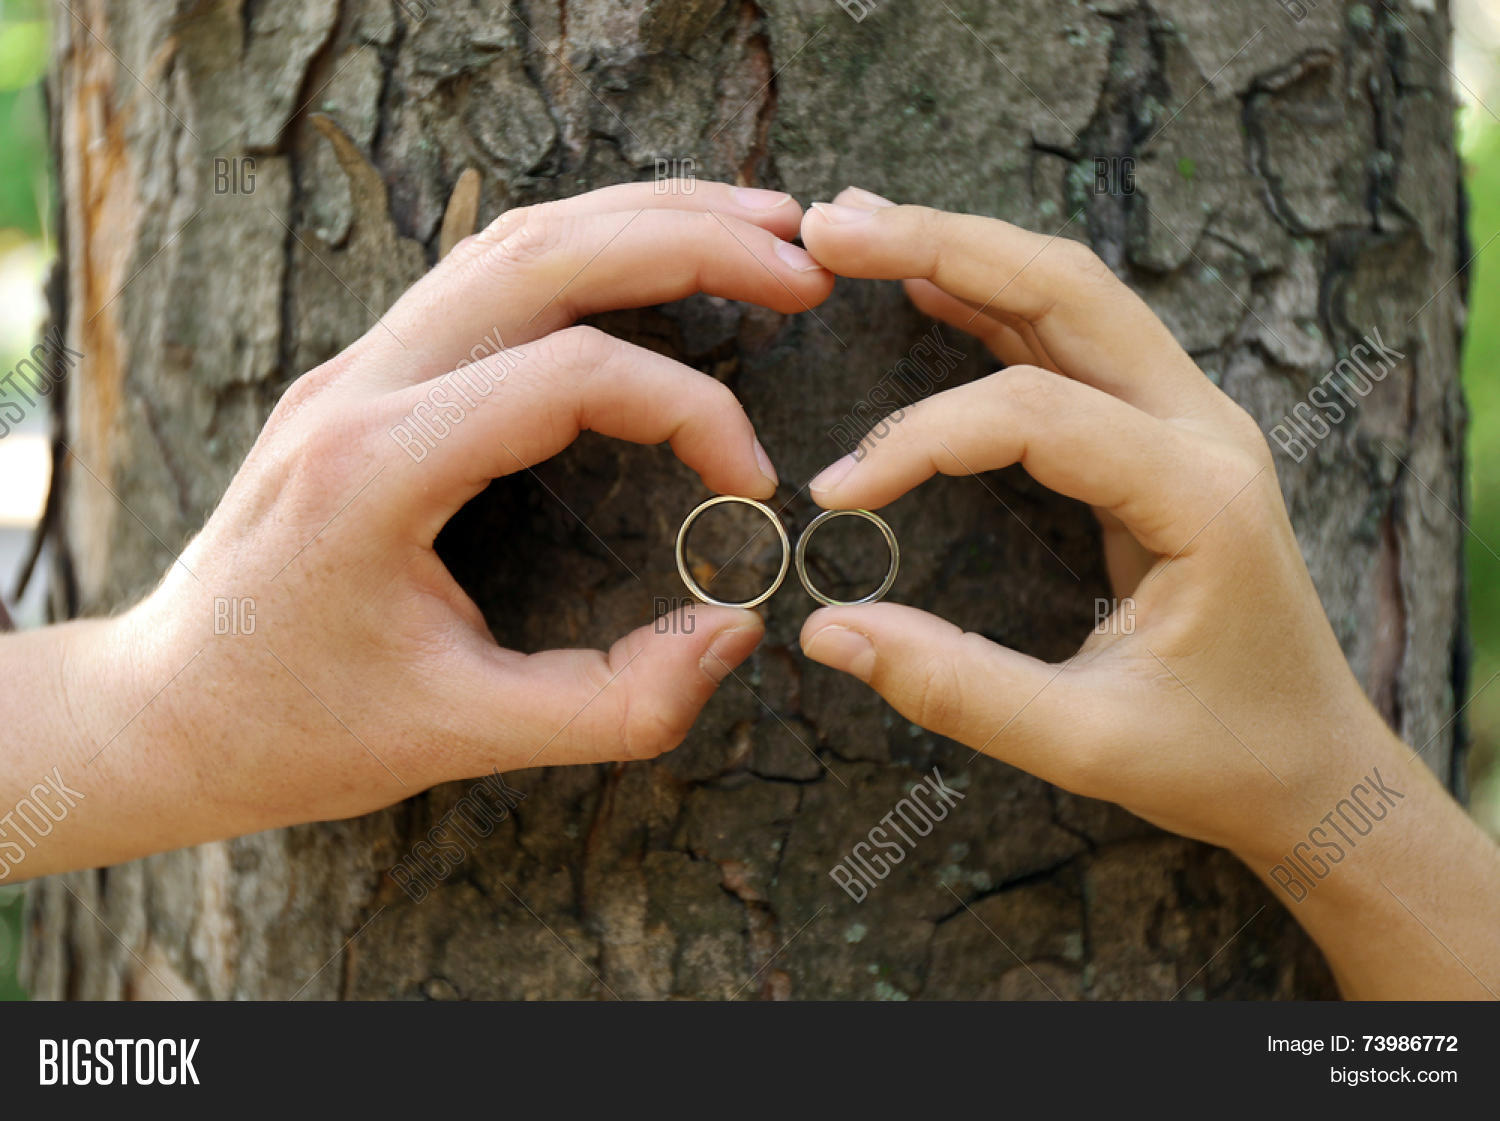 Two Hands With Wedding Rings Hugging Trunk Large Tree Close Up